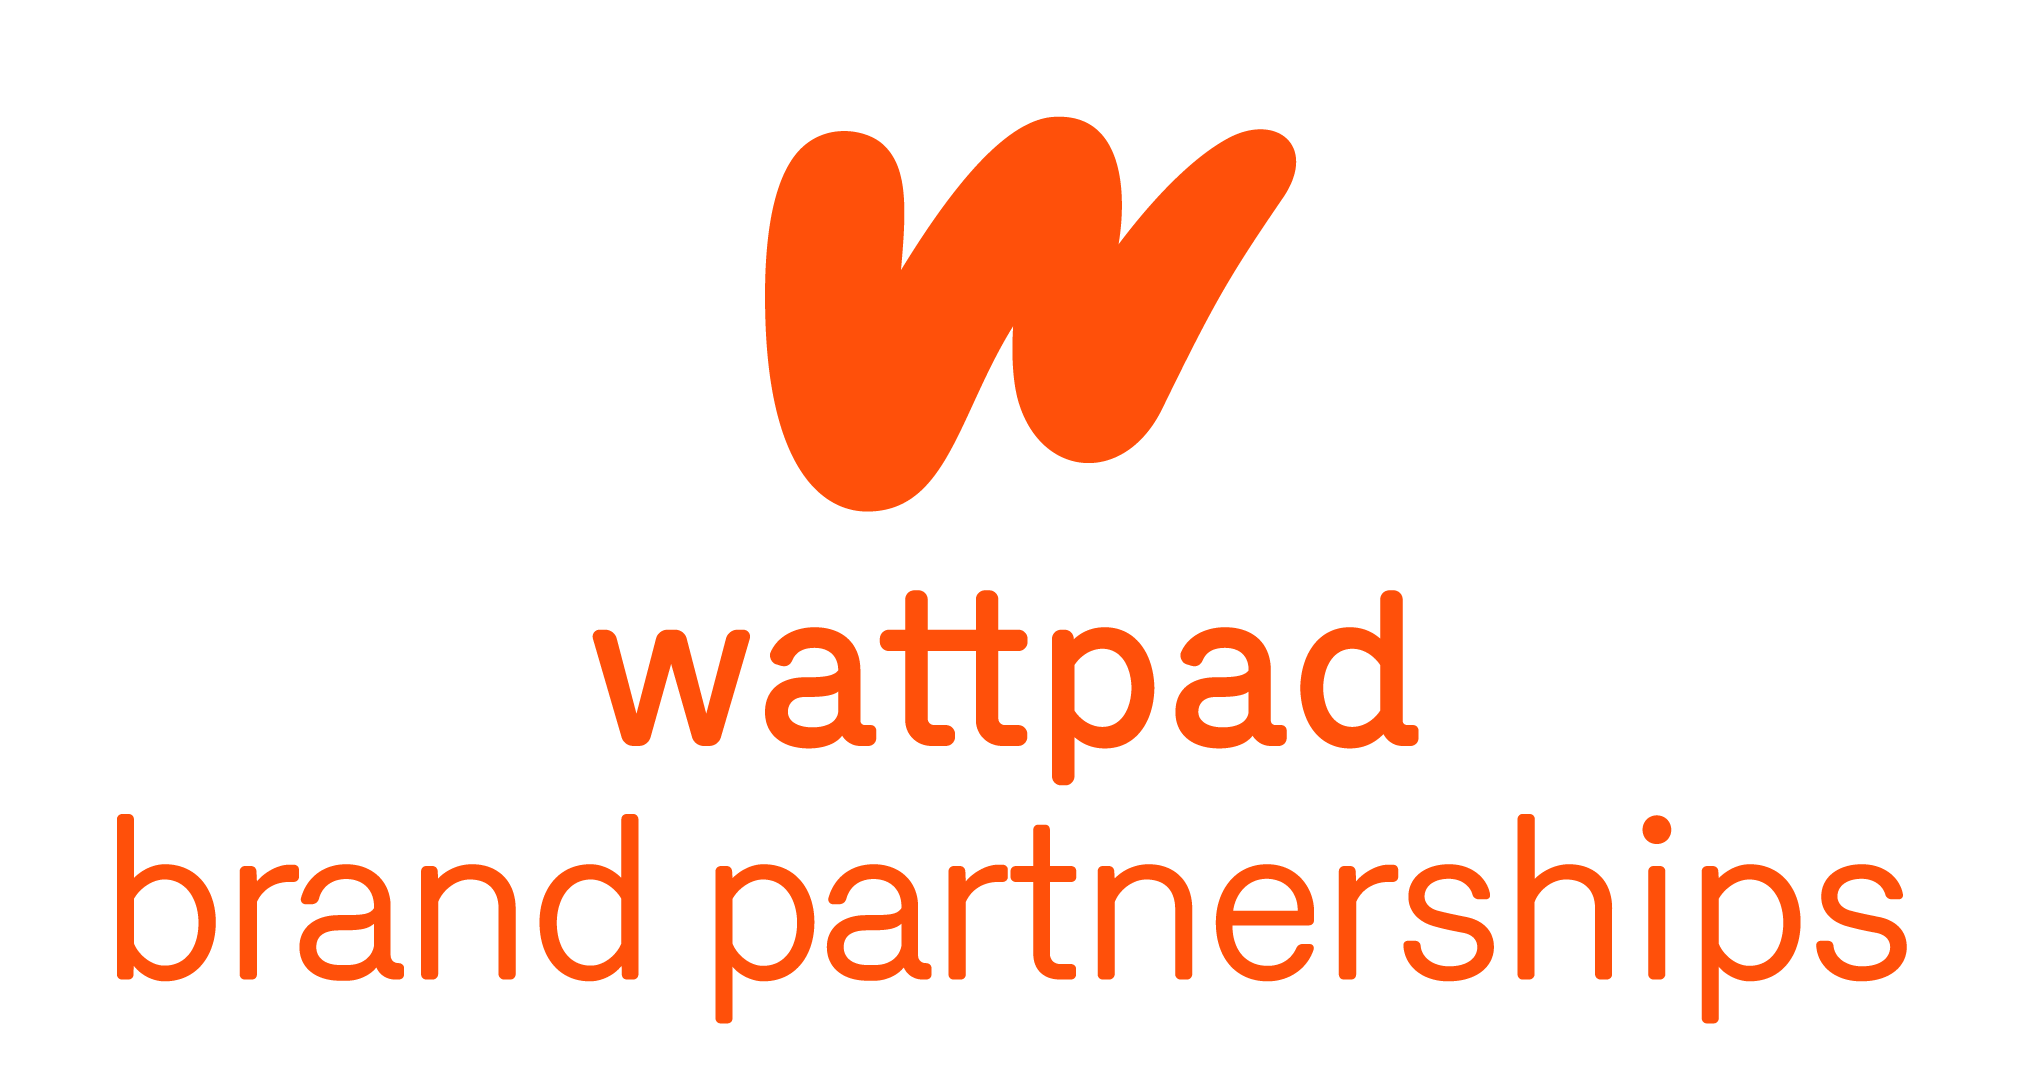 Wattpad_BrandPartnerships_Vertical_Orange_RGB (3)